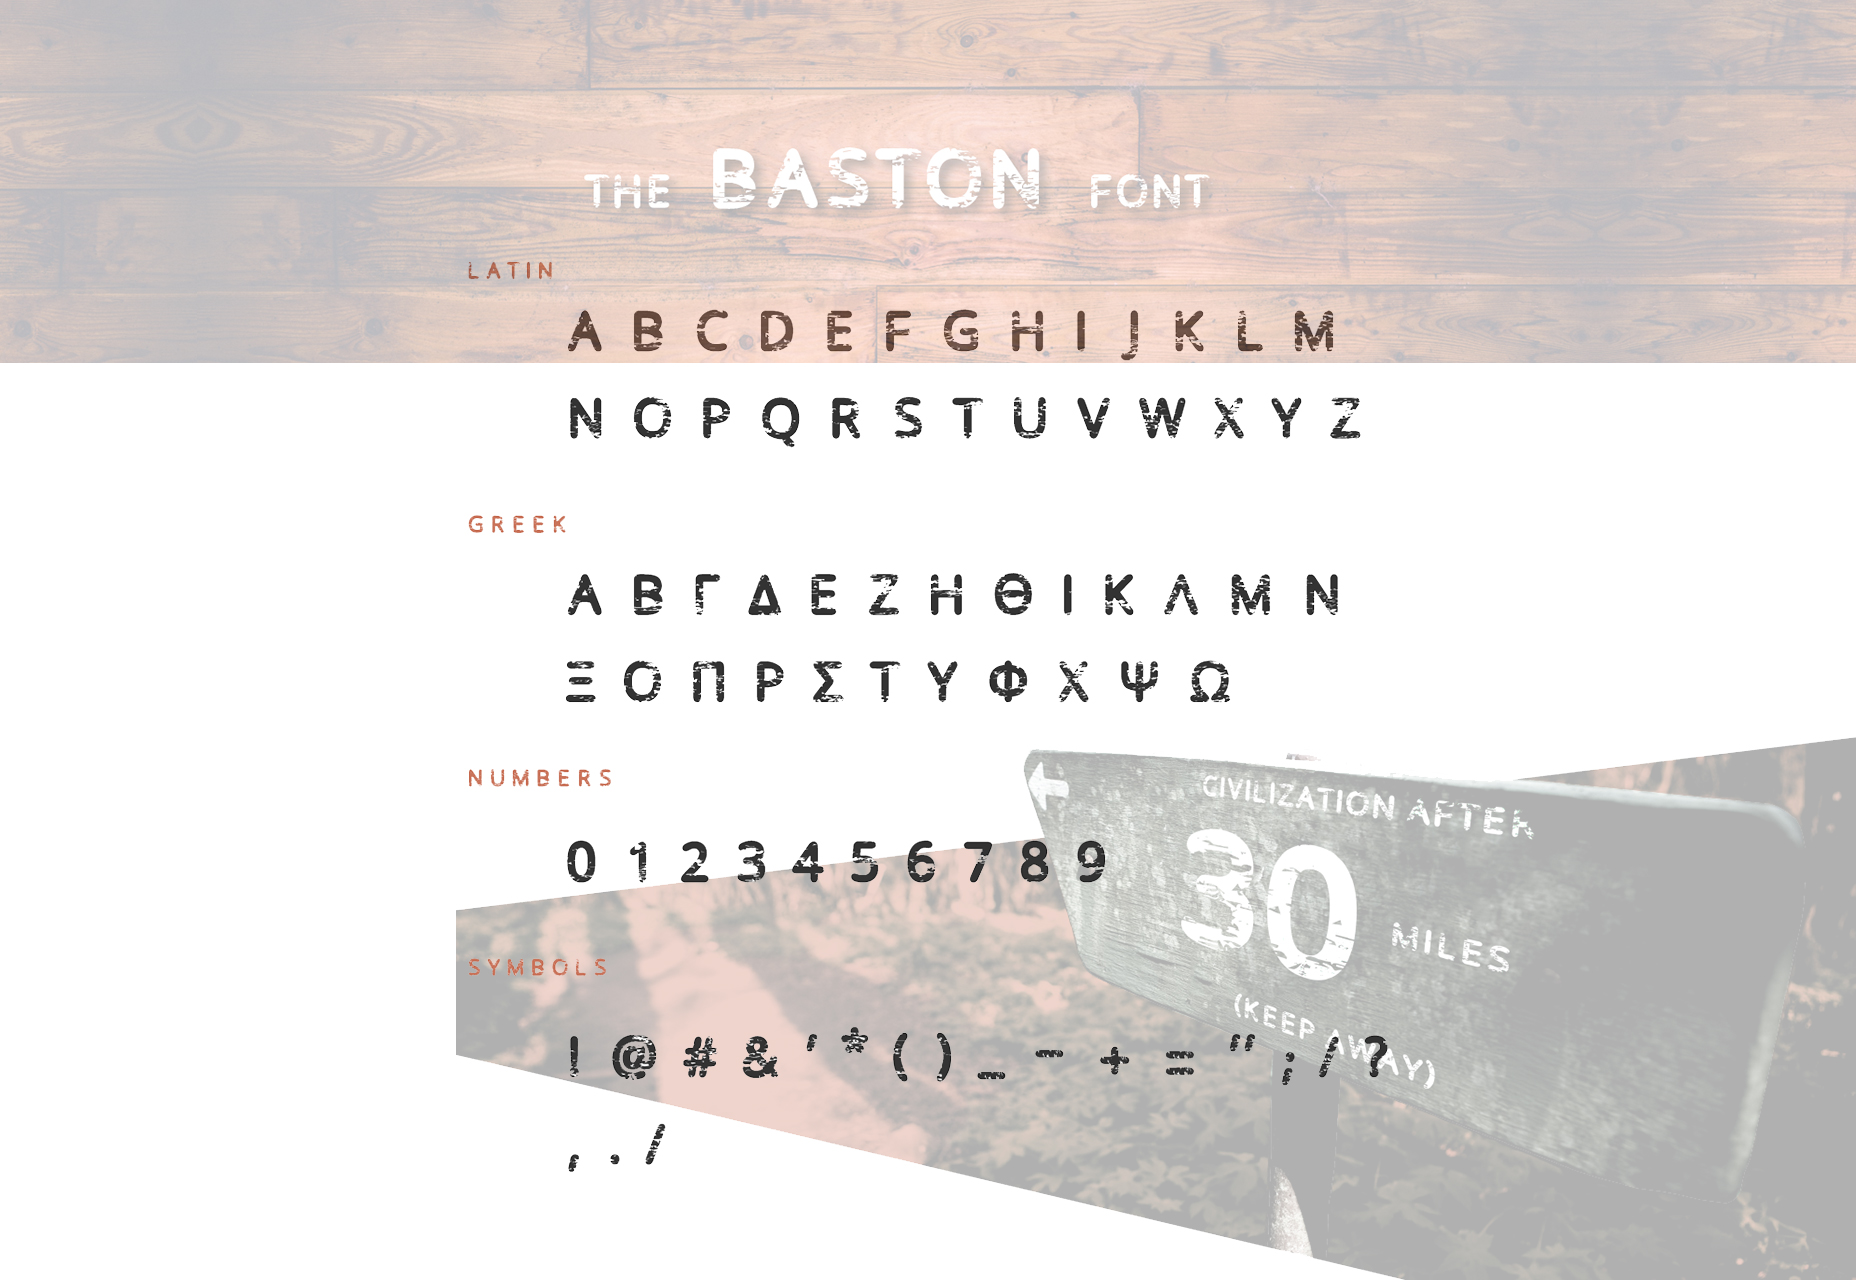 baston-cool-worn-away-font